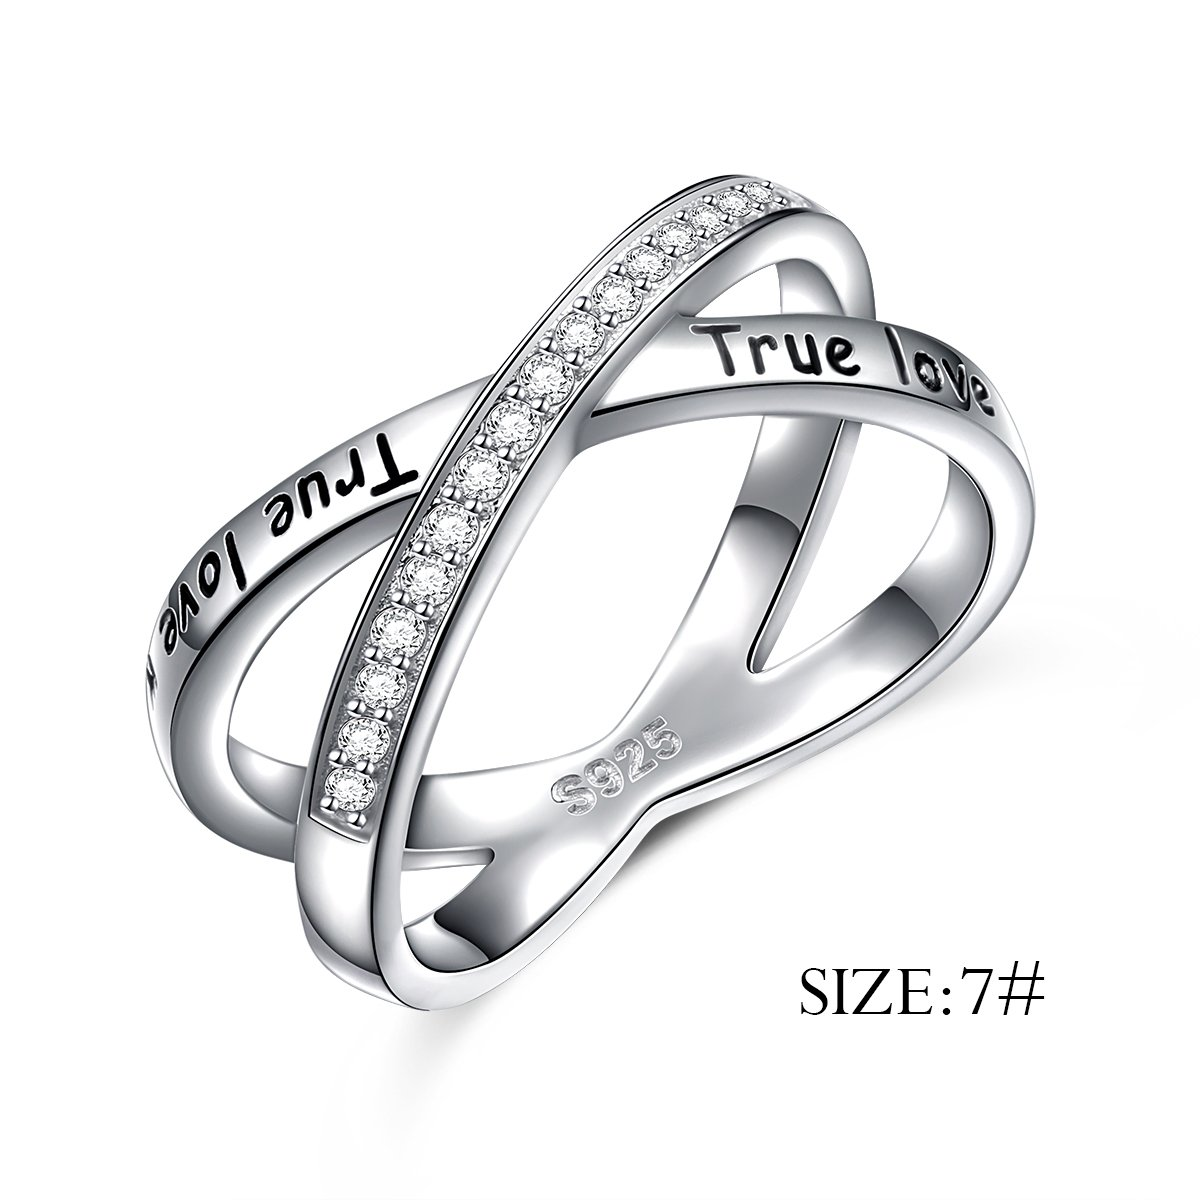 S925 Sterling Silver True Love Waits Infinity Criss Cross Rings for Women Lady, Size 7 by Silver Light Jewelry (Image #3)